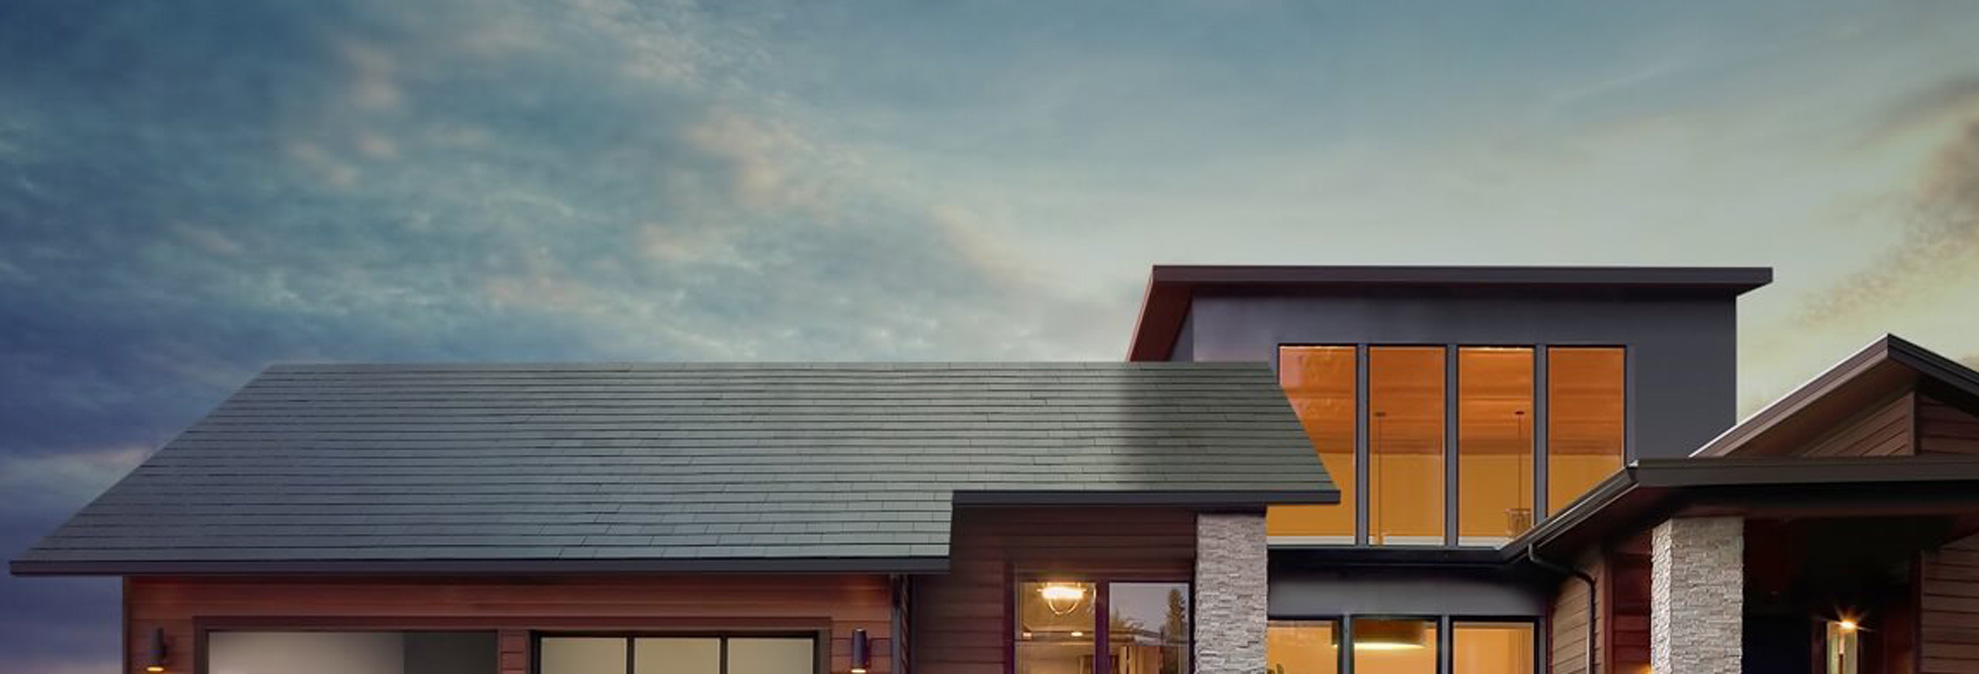 here 39 s how much tesla 39 s new solar roof could cost consumer reports. Black Bedroom Furniture Sets. Home Design Ideas